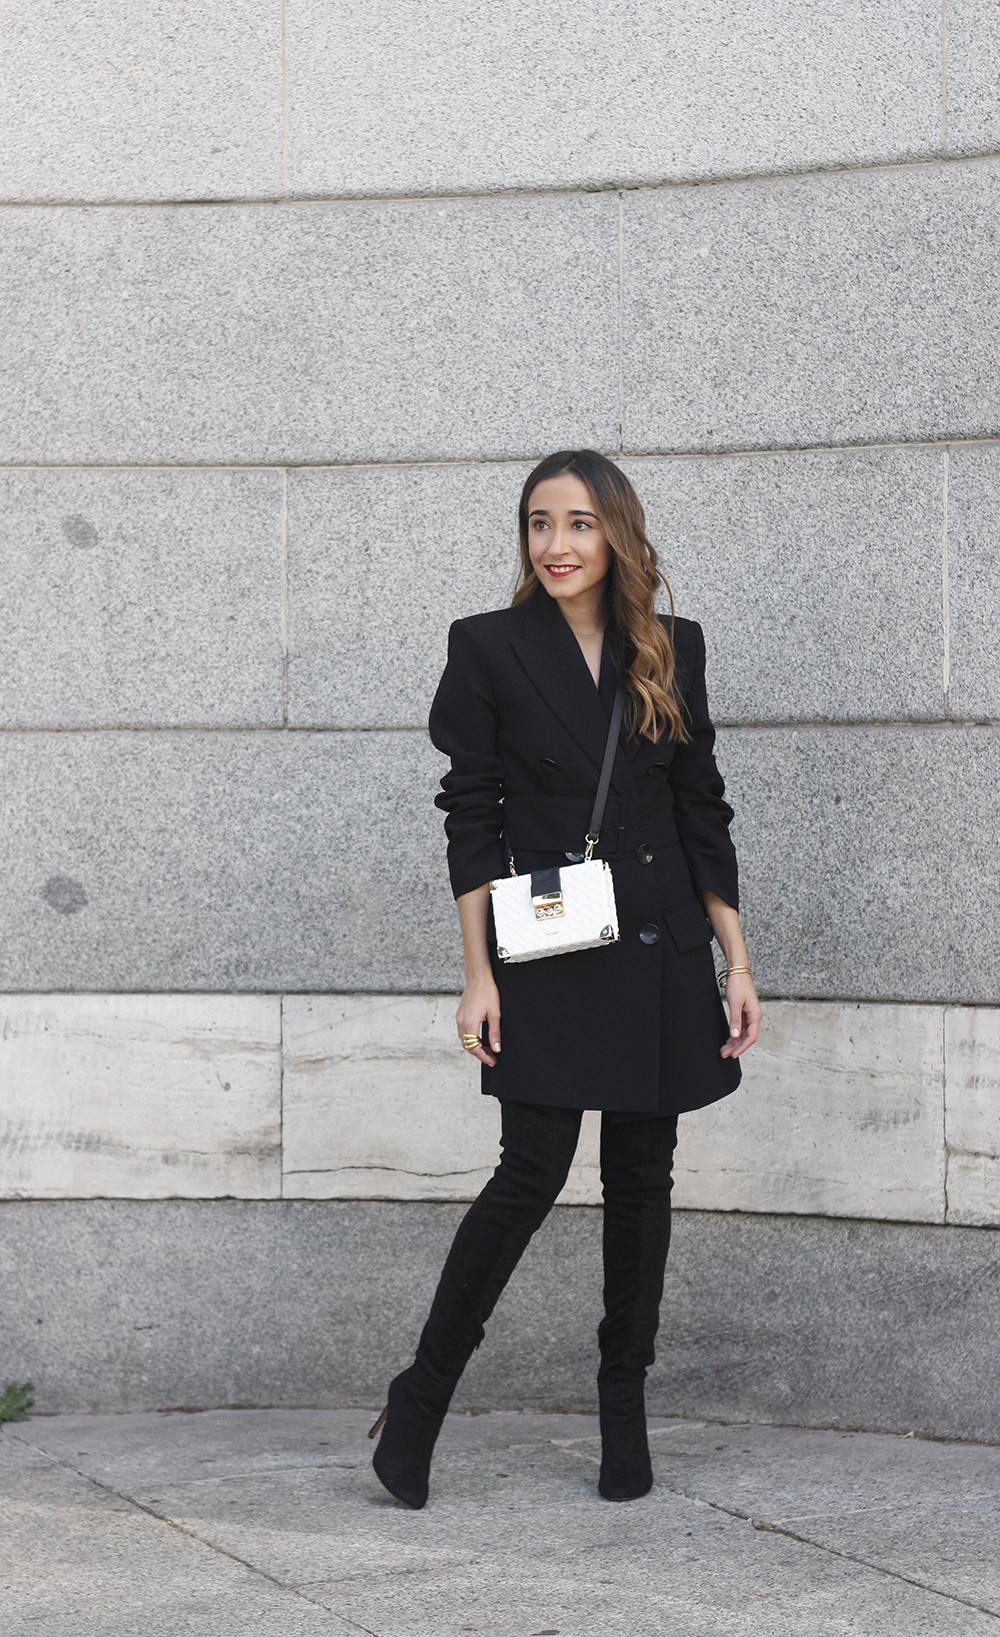 Black Blazer dress over the knee boots outfit uterqüe fashion style outfit autumn05